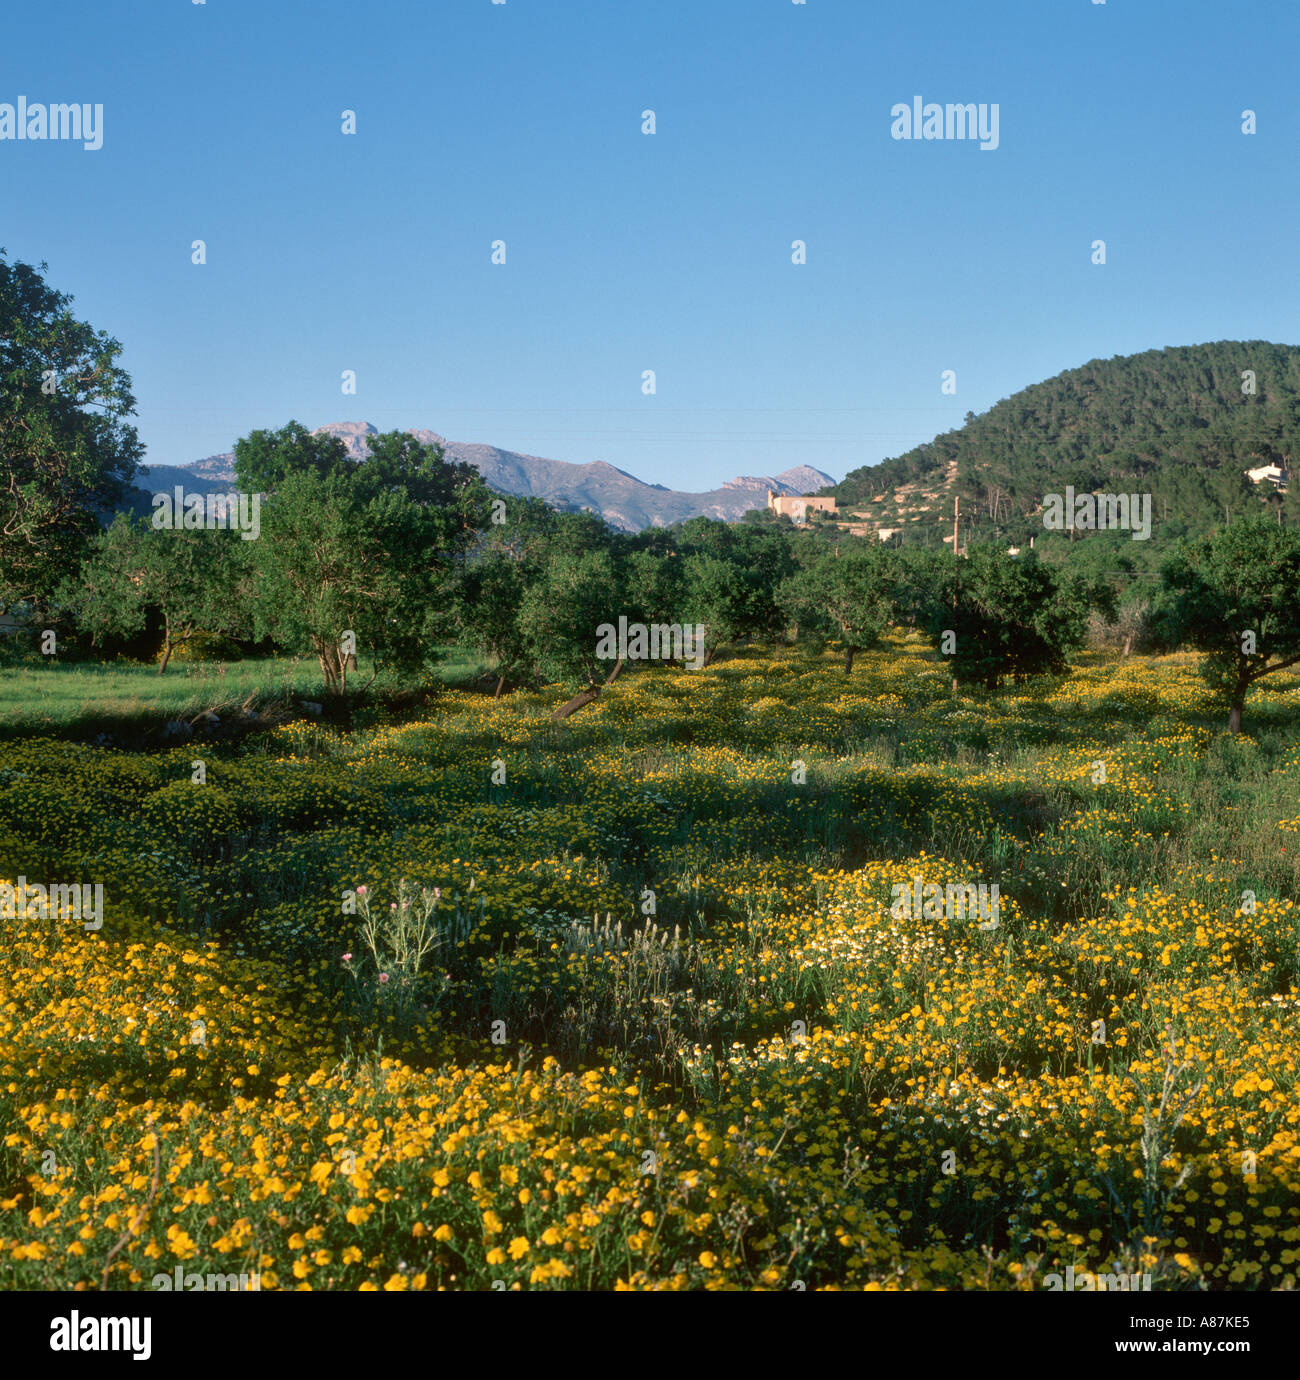 Countryside in the south west of the island of Mallorca, Balearic Islands, Spain - Stock Image